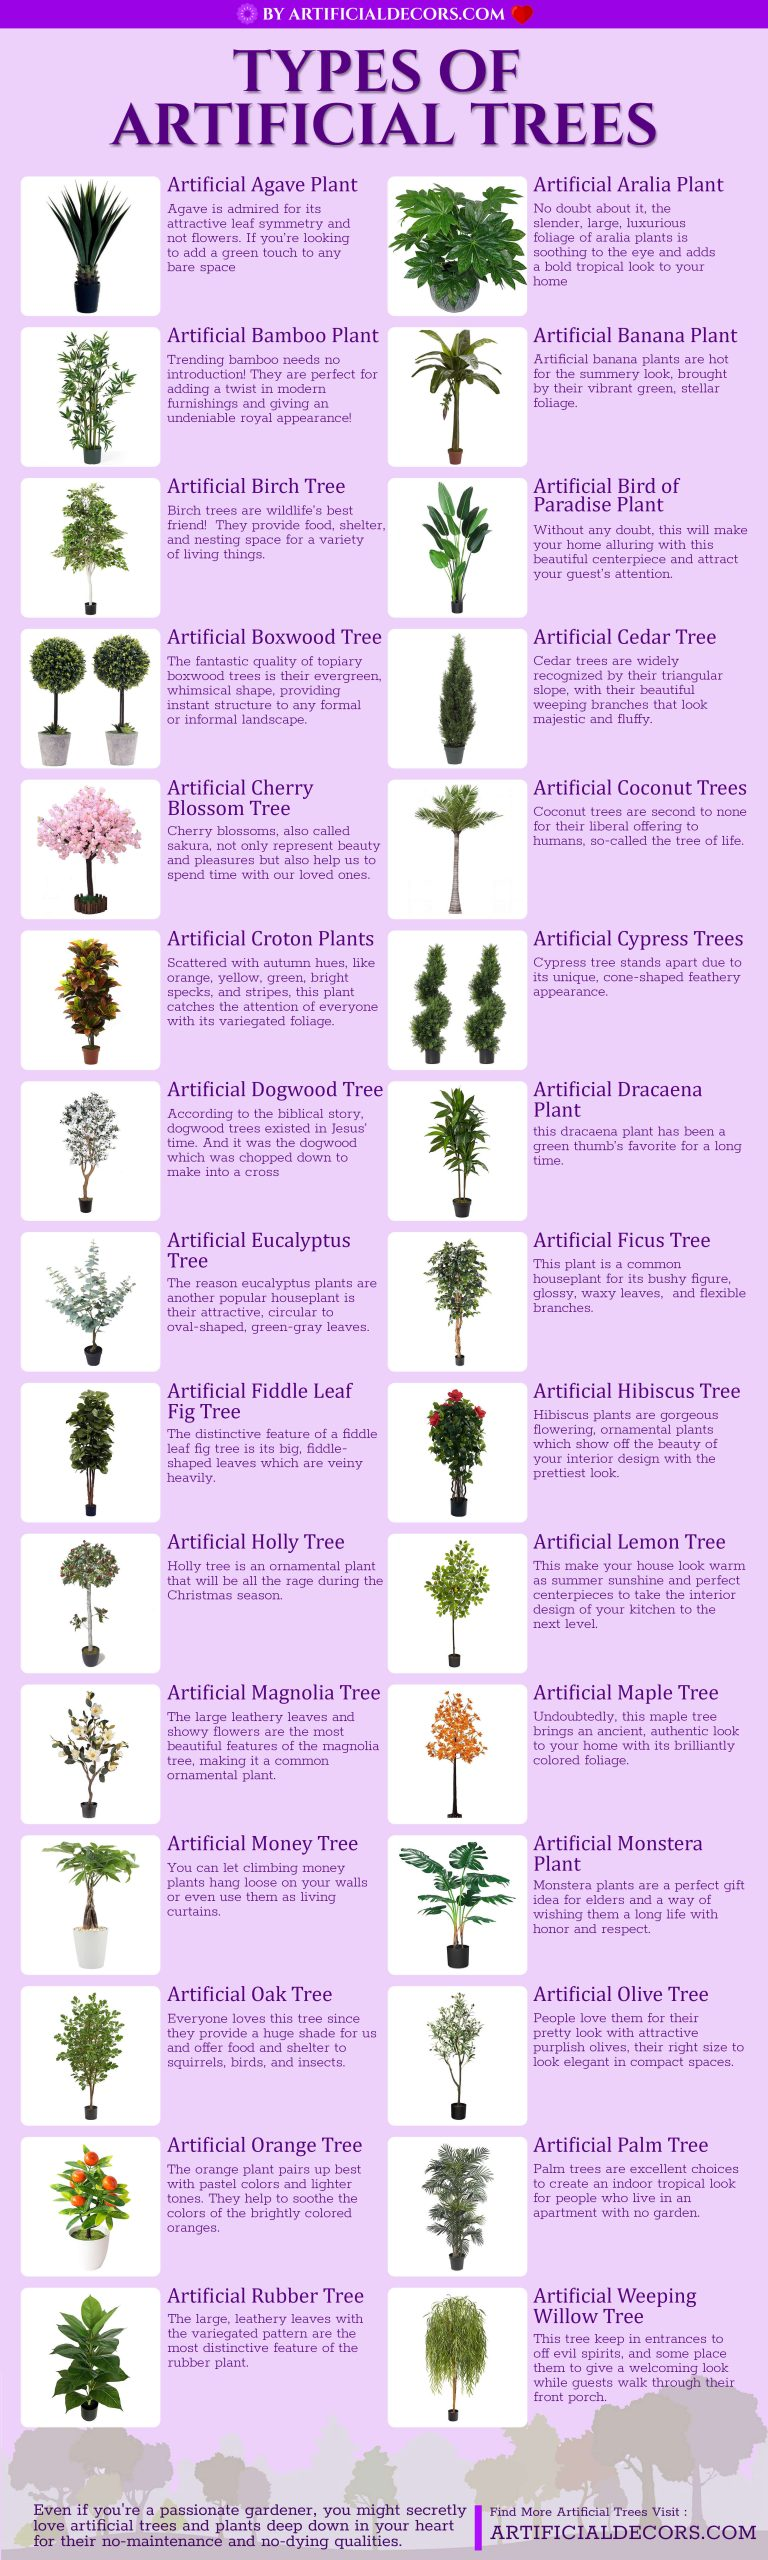 types of artificial fake trees